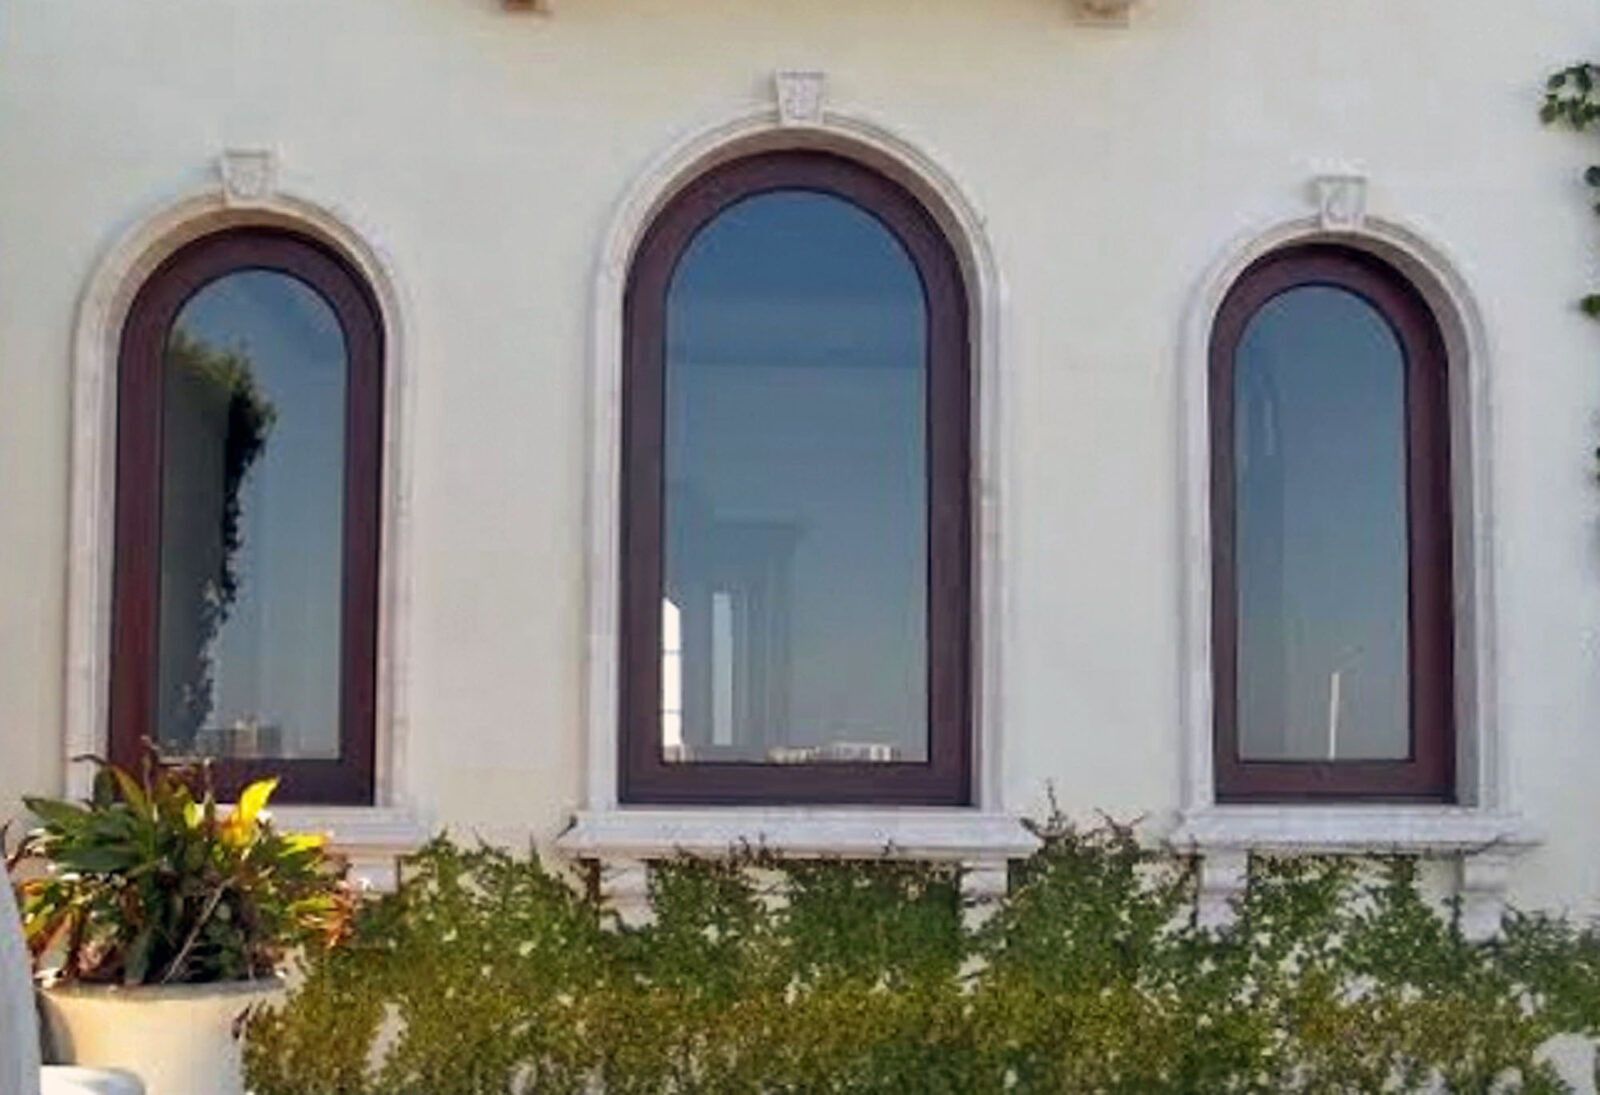 SOUTH MIAMI BEACH WINDOWS